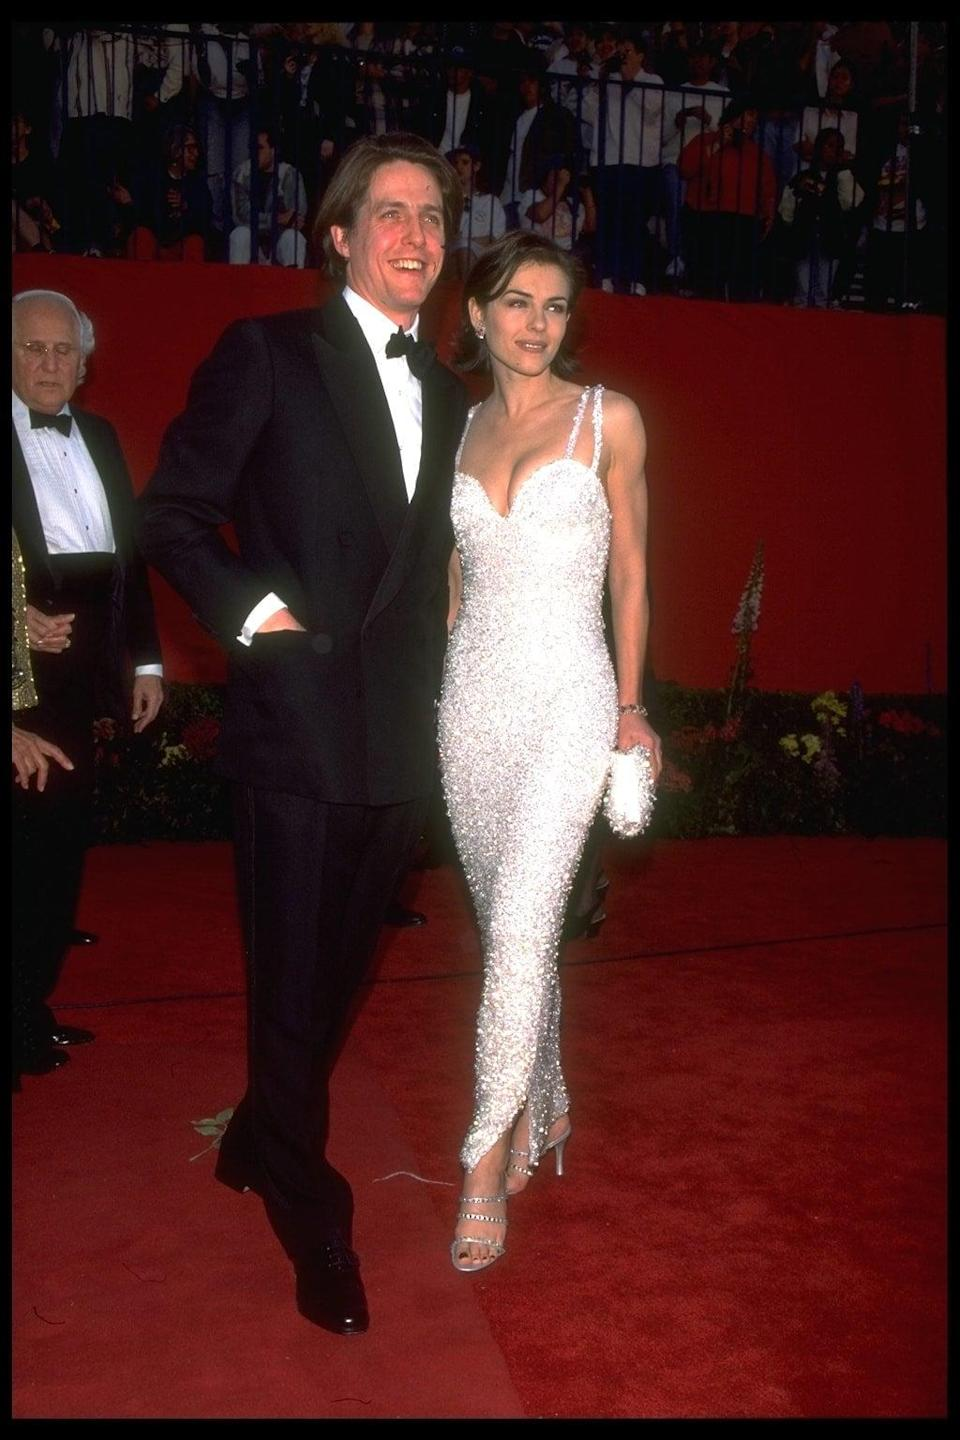 <p>The model and actress dazzled at the Oscars in 1995 wearing a sparkly Versace gown. </p>